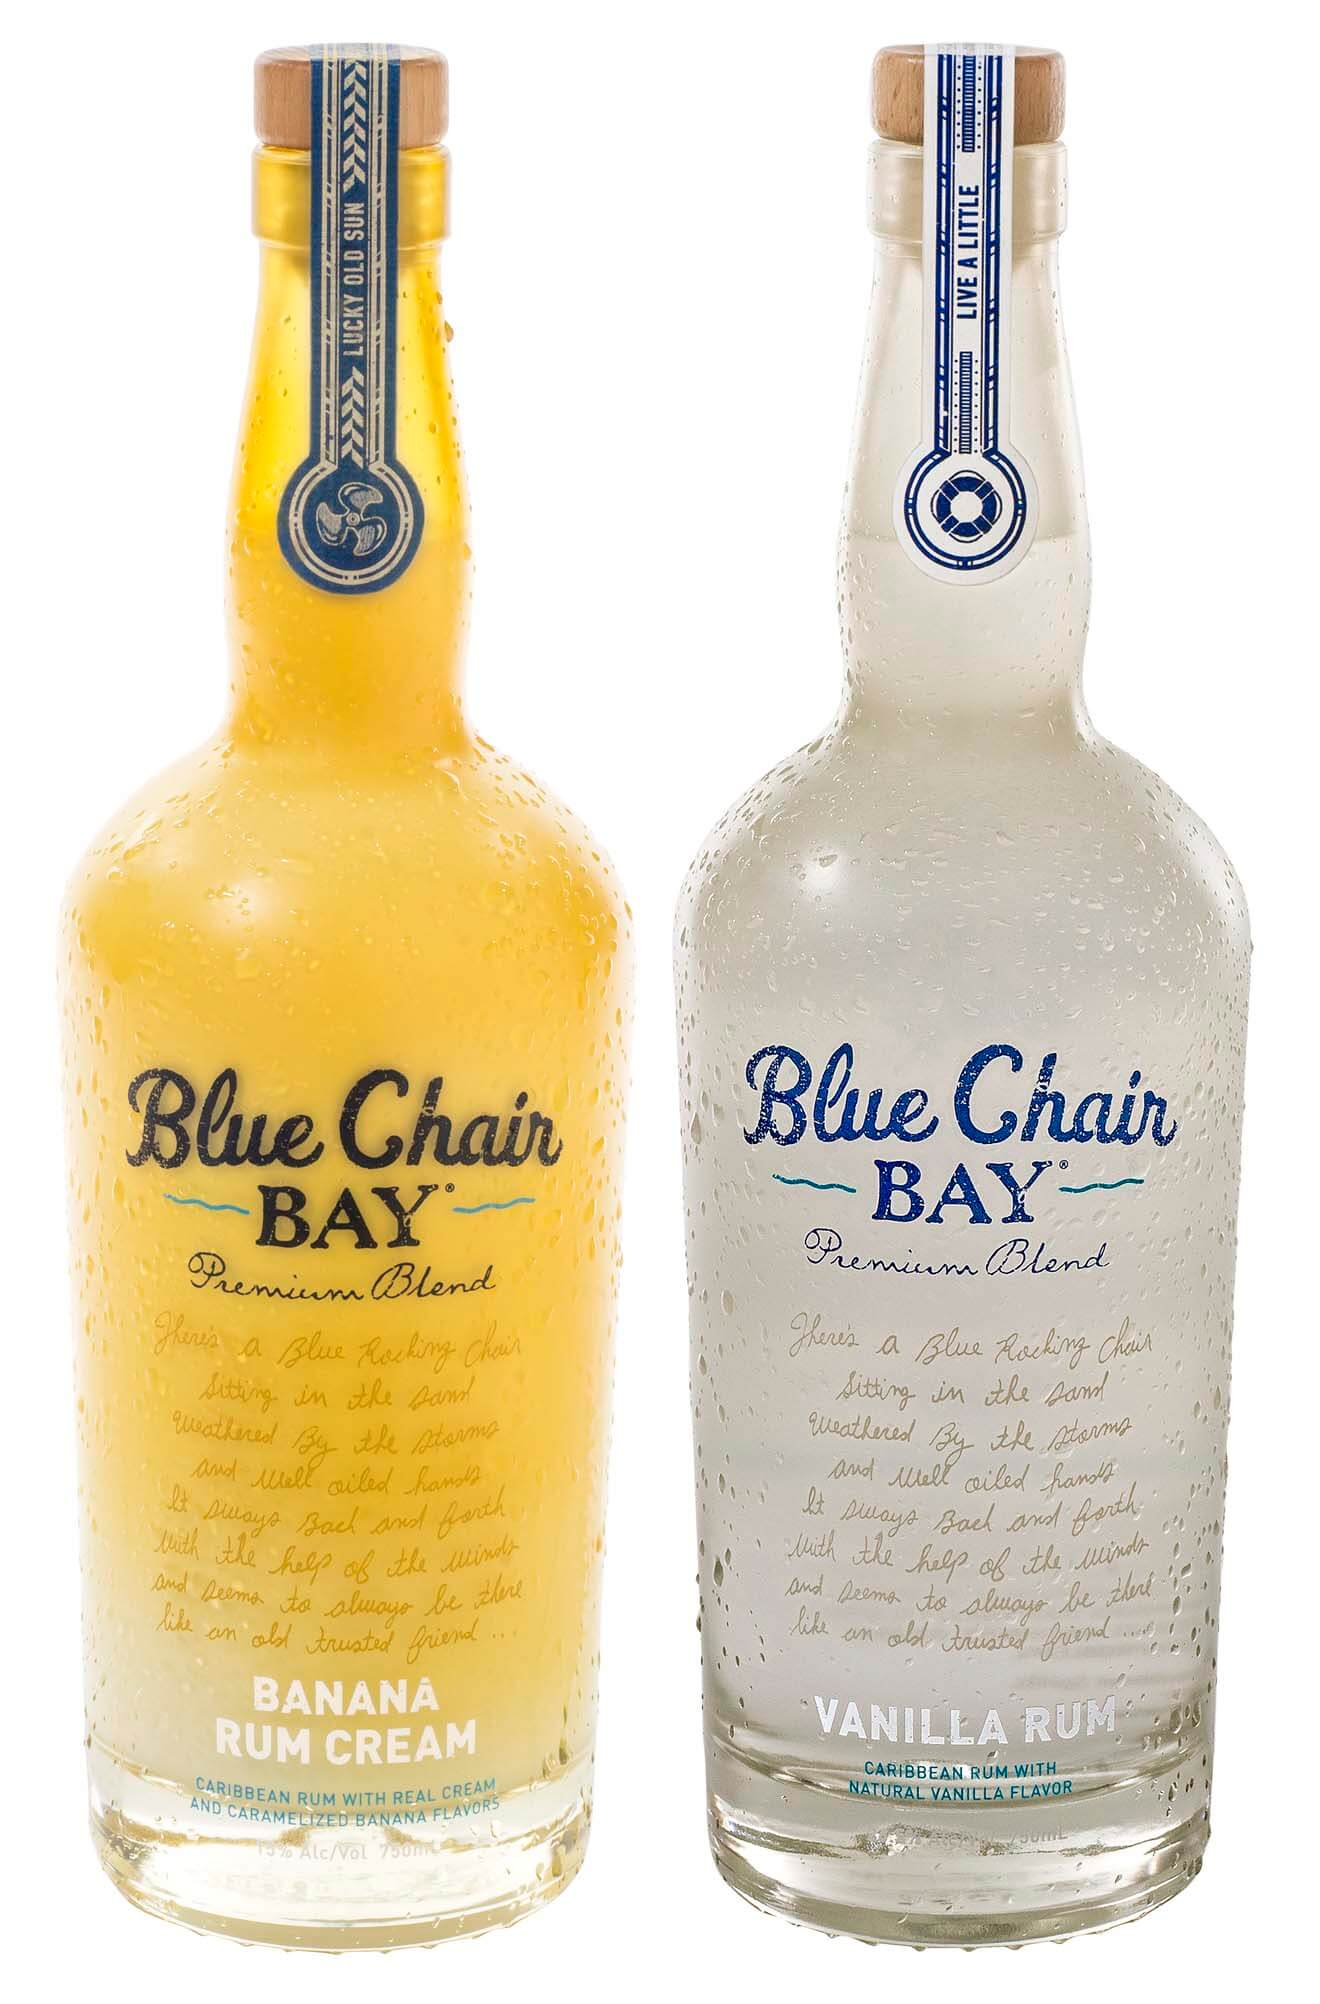 Blue Chair Bay New Flavors Vanilla and Banana Rum Cream